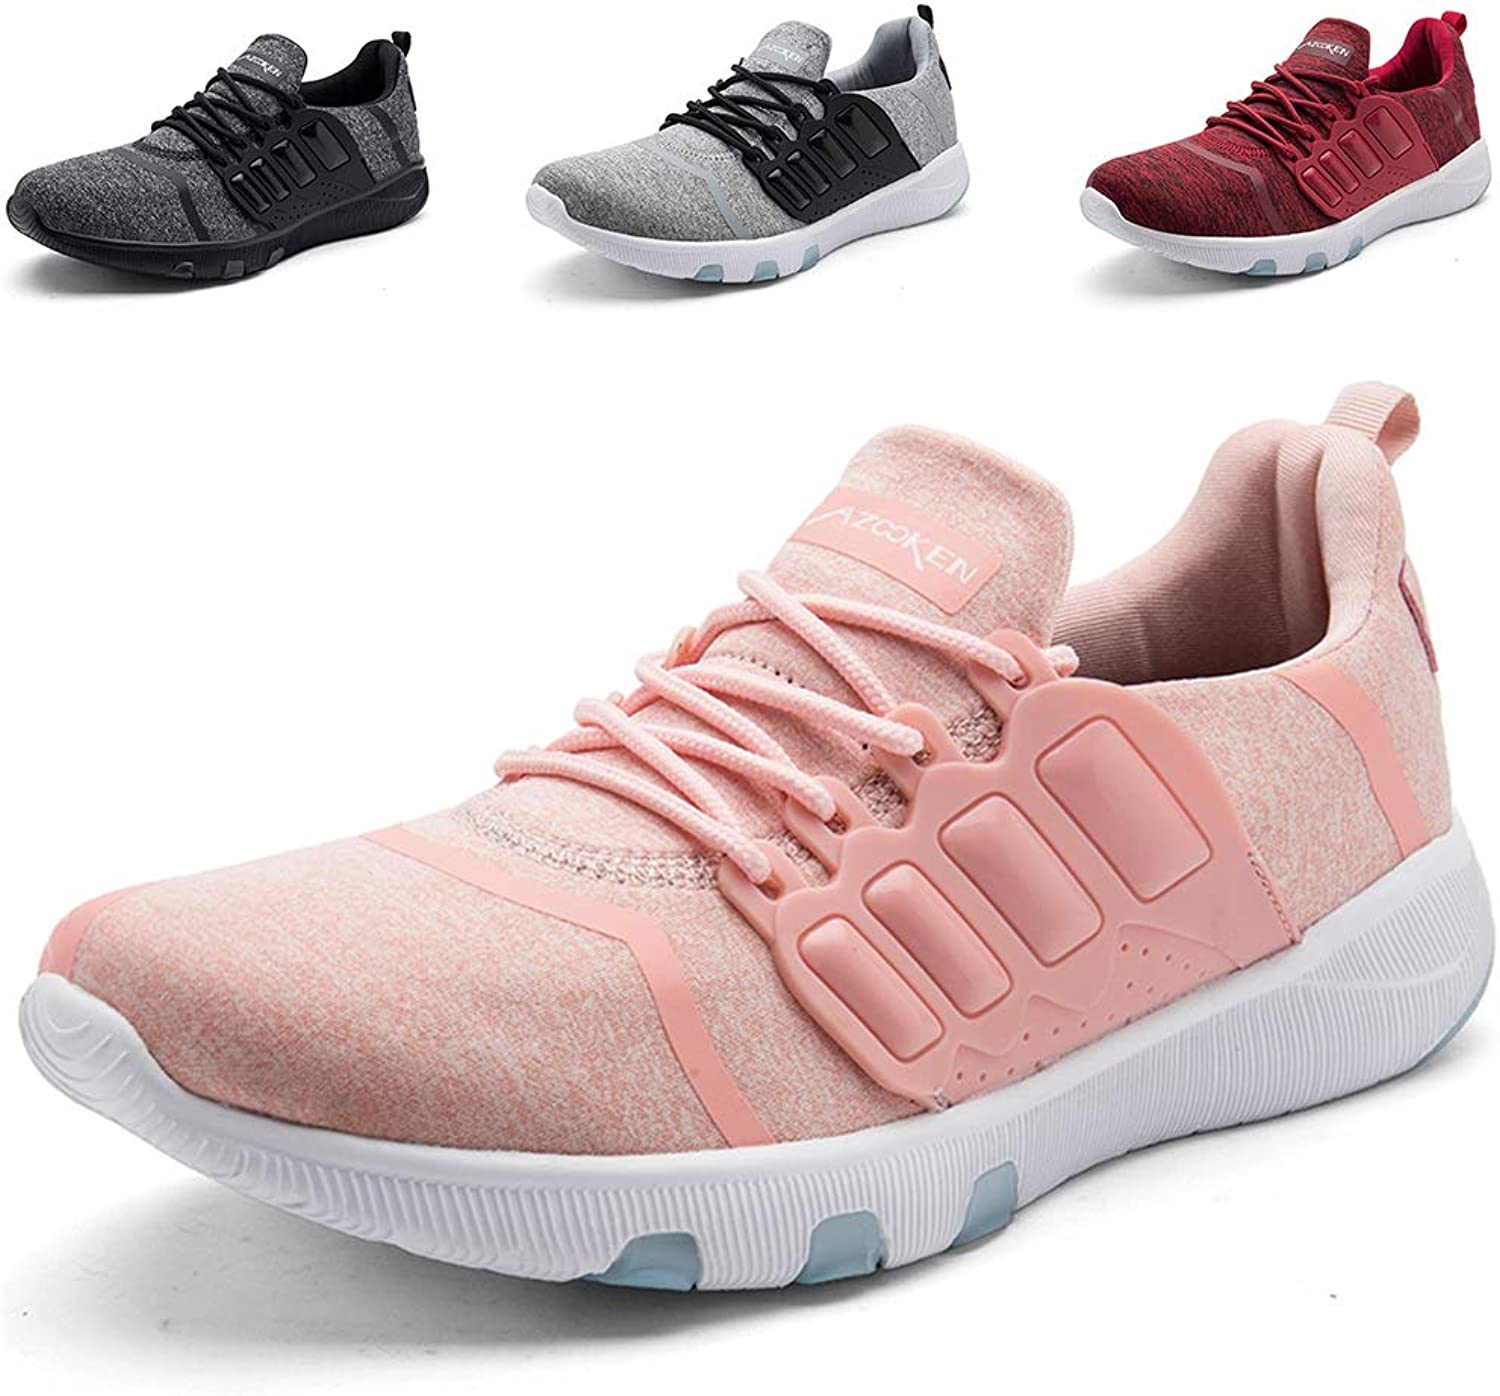 TORISKY Mens Womens Trainers shoes Cushion Lightweight Sport Gym Running shoes Competition Athletic Sneakers